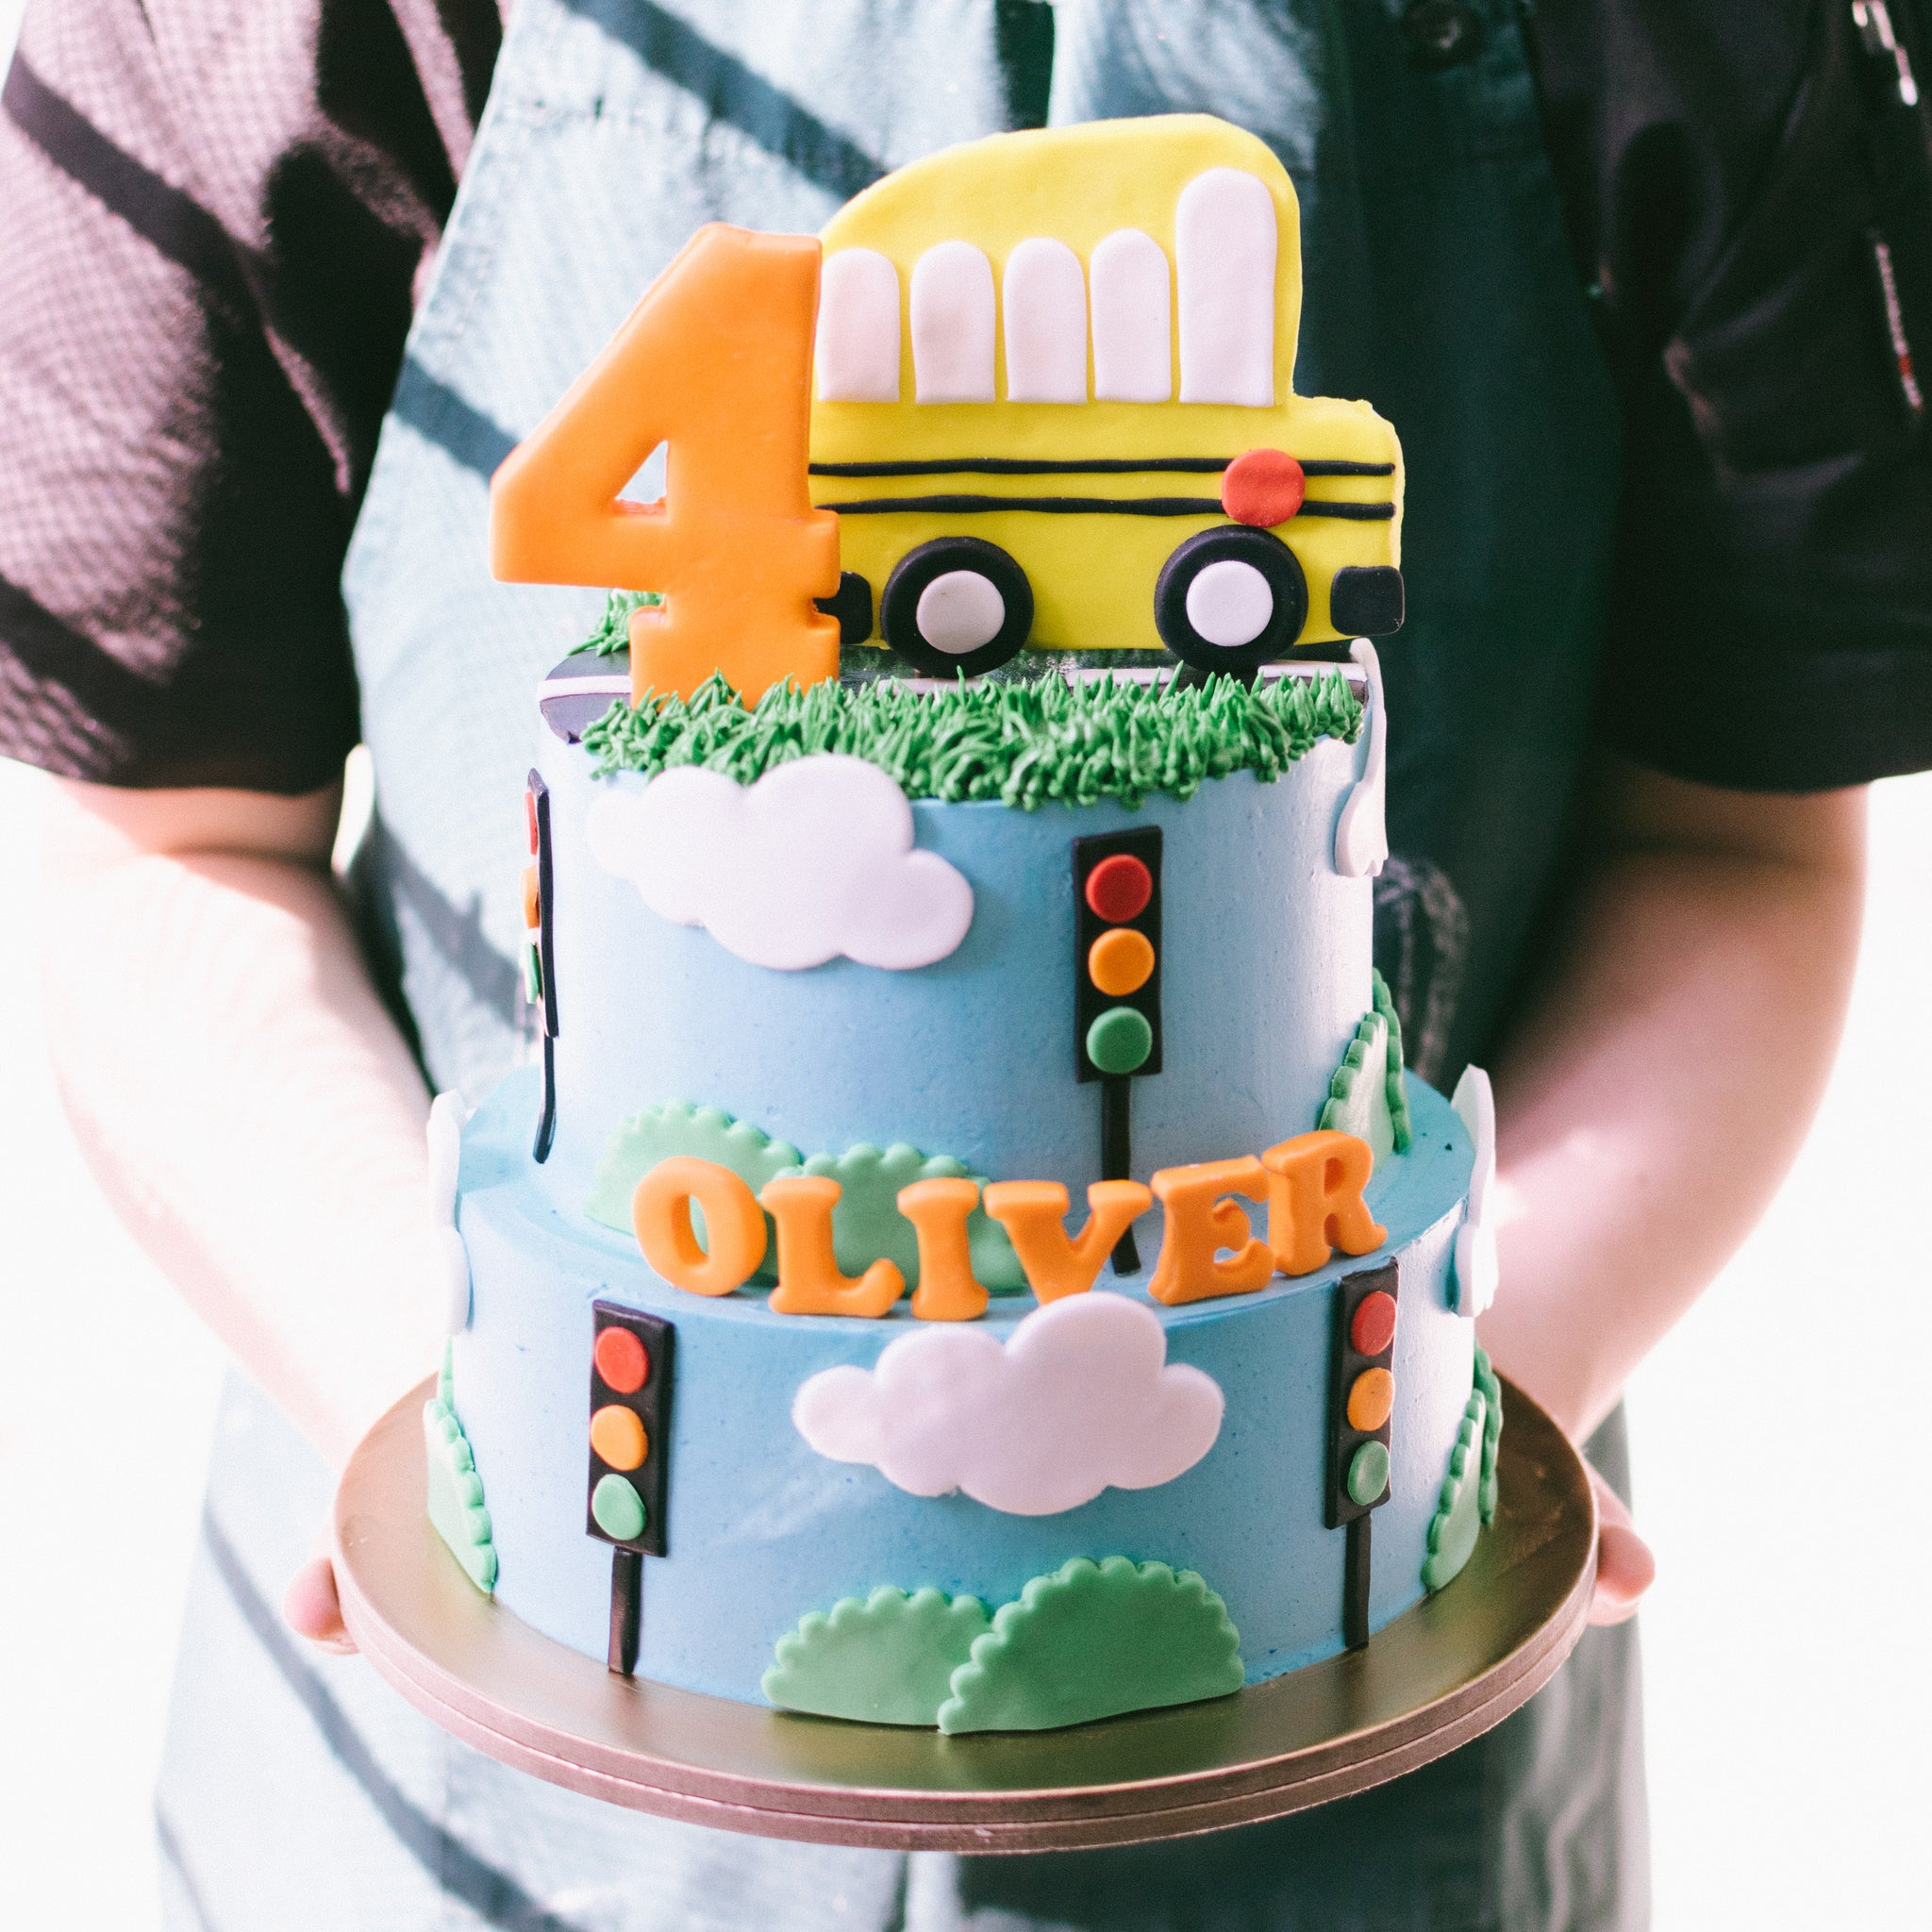 Two-Tier Yellow Bus Cake